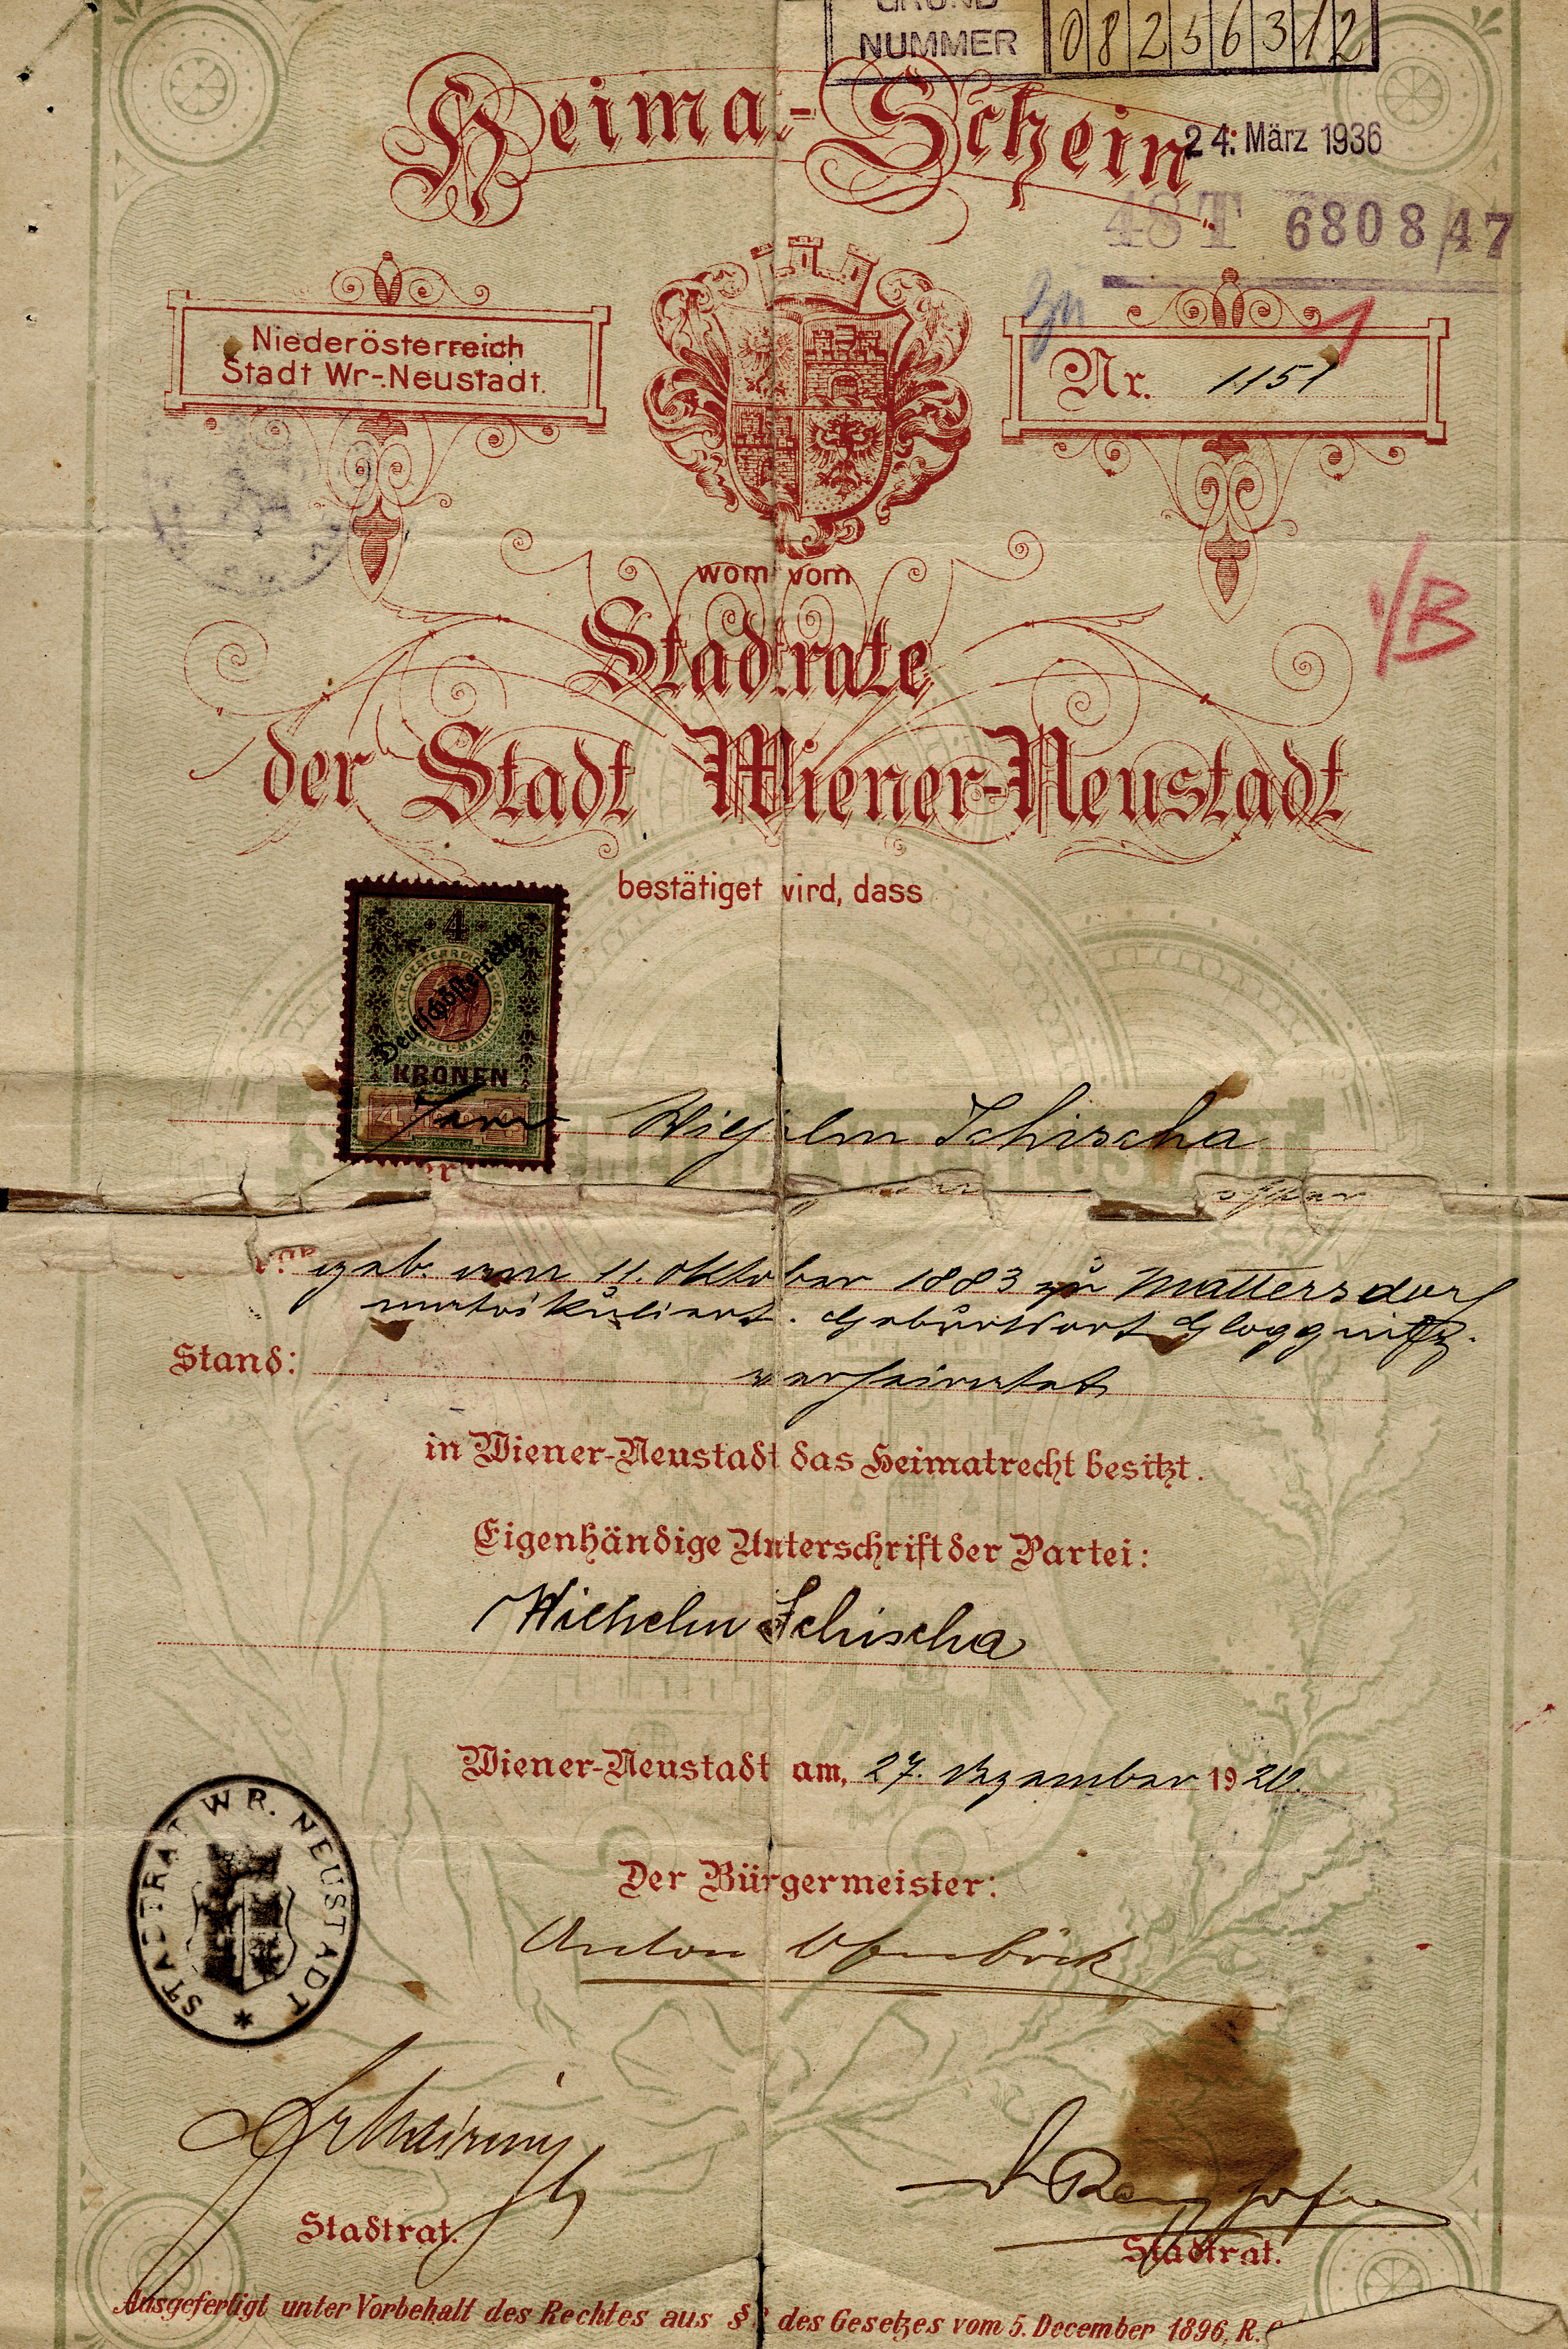 Certificate stating Lilli Tauber's father Wilhelm Schischa's right of domicile in Wiener Neustadt